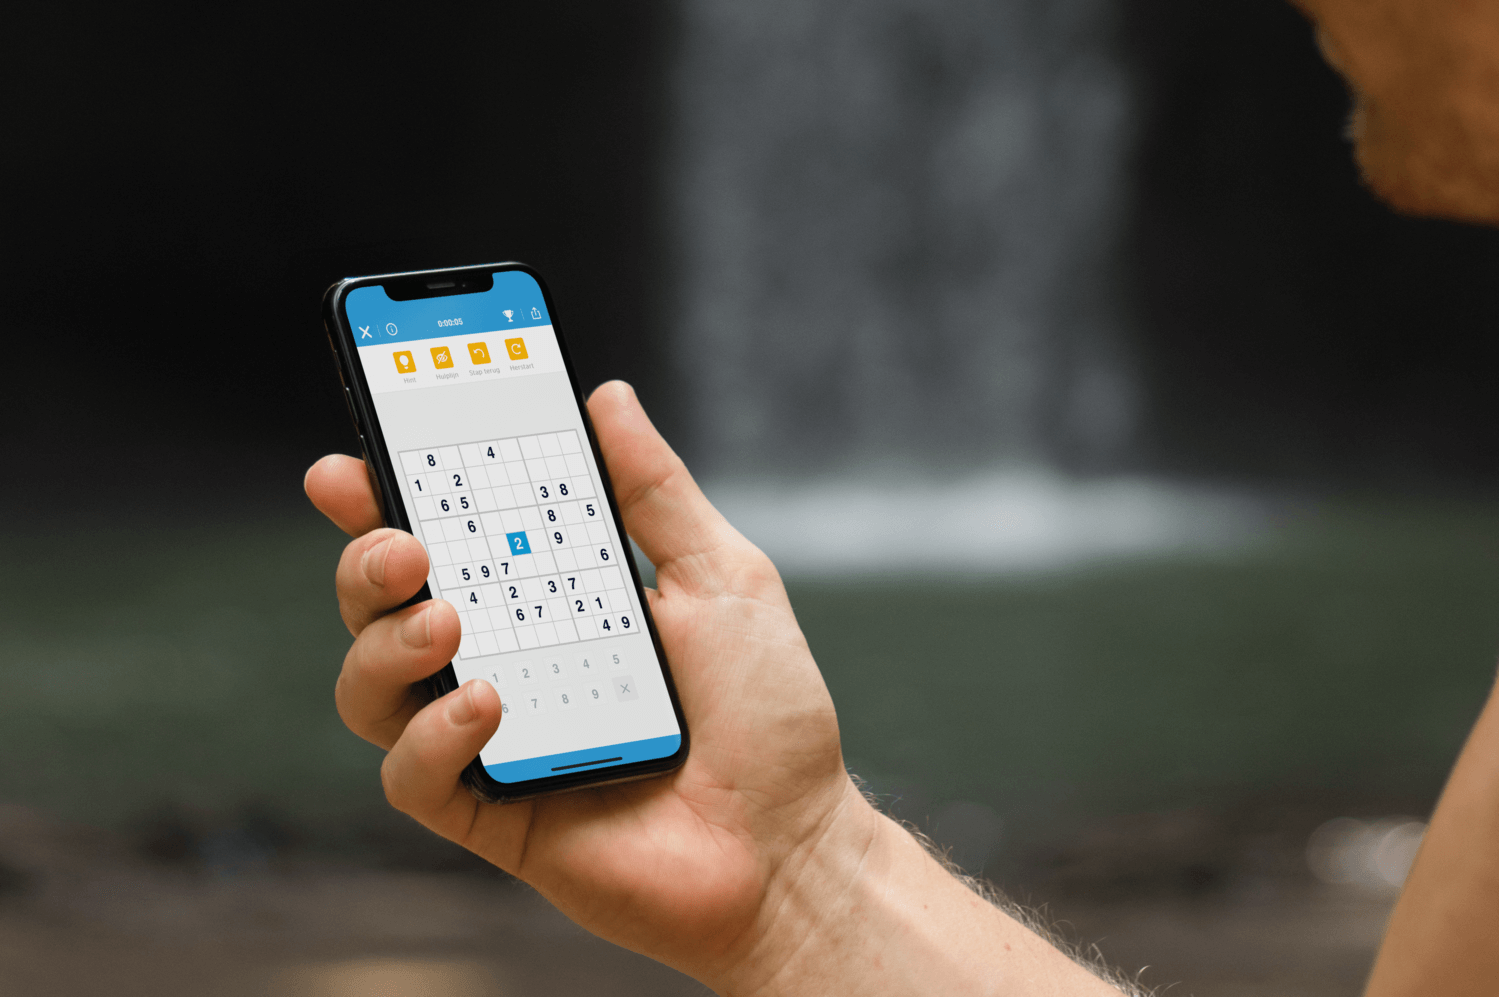 A hand holding an iPhone with Sudoku